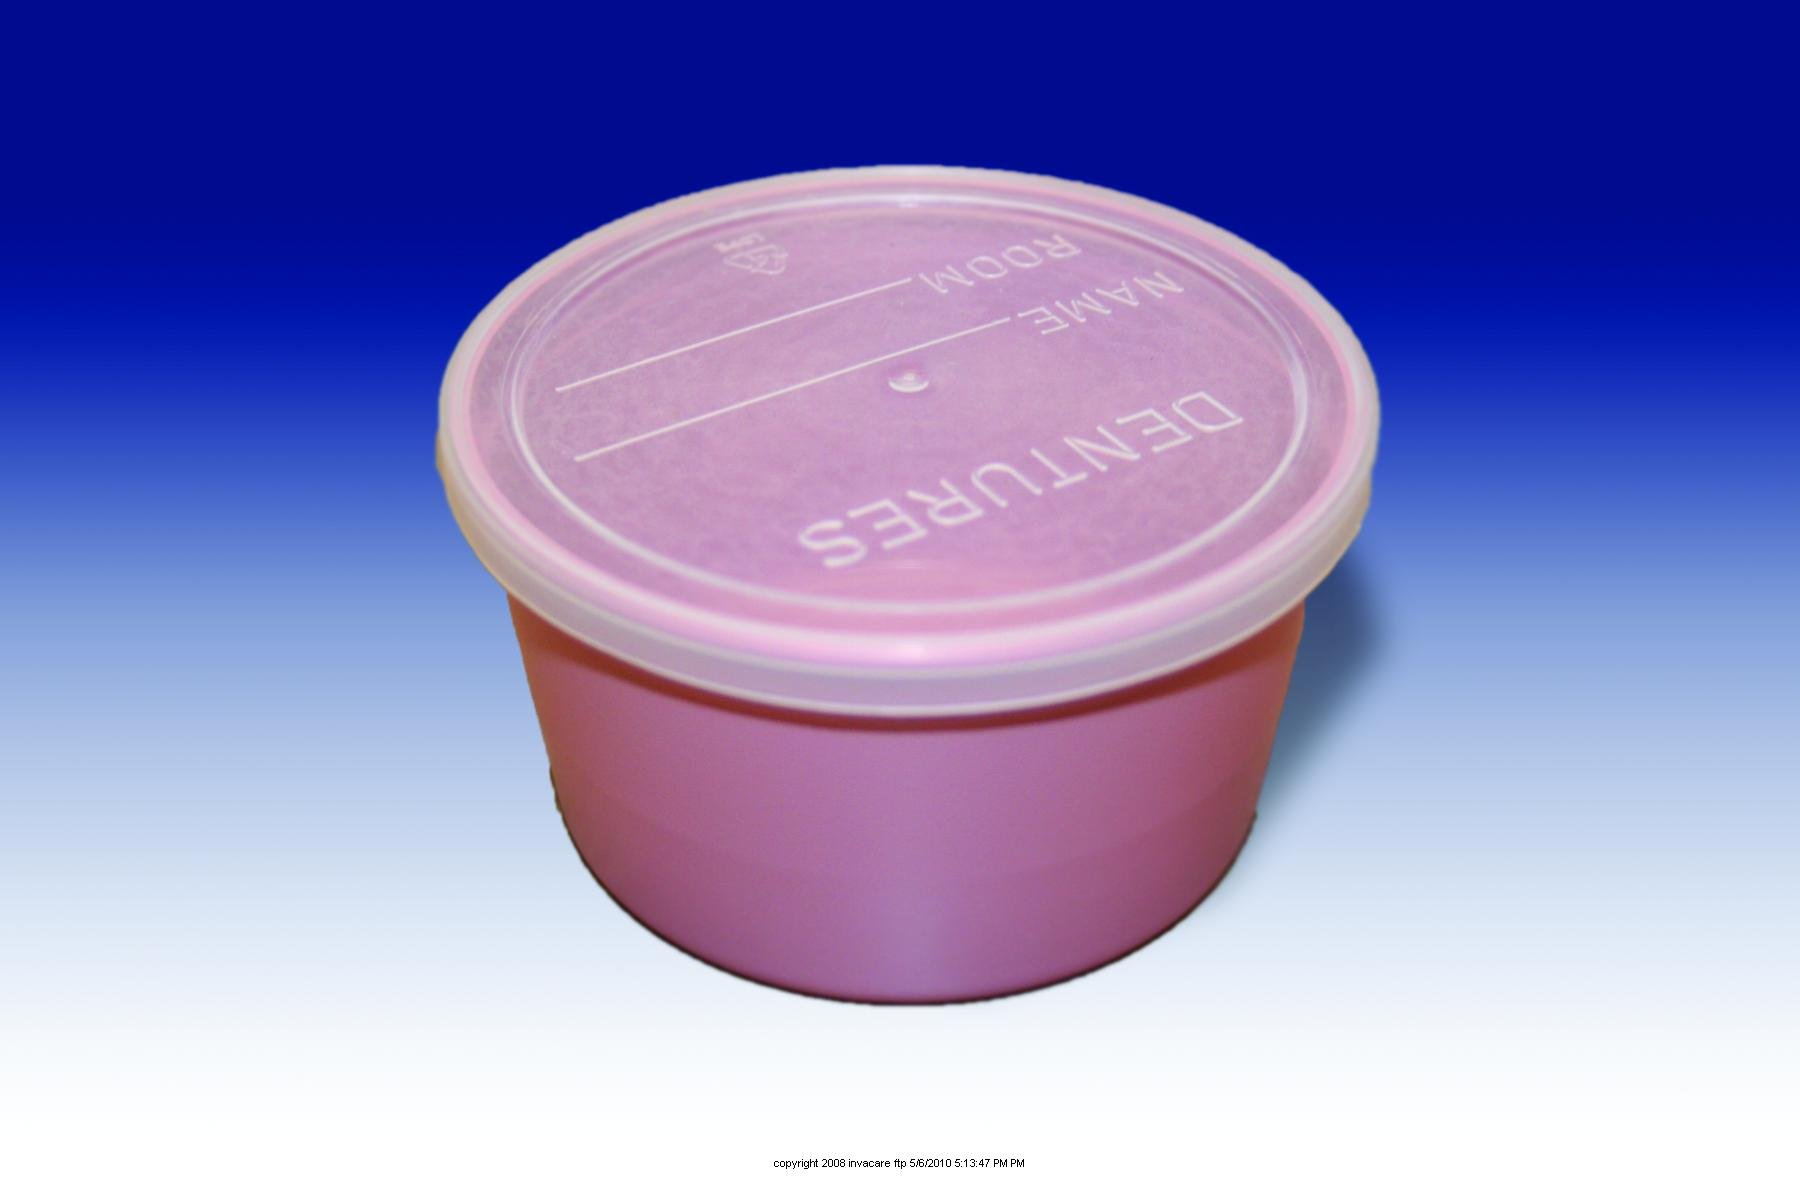 Denture Cup Case of 250 by MEDICAL ACTION INDST INC